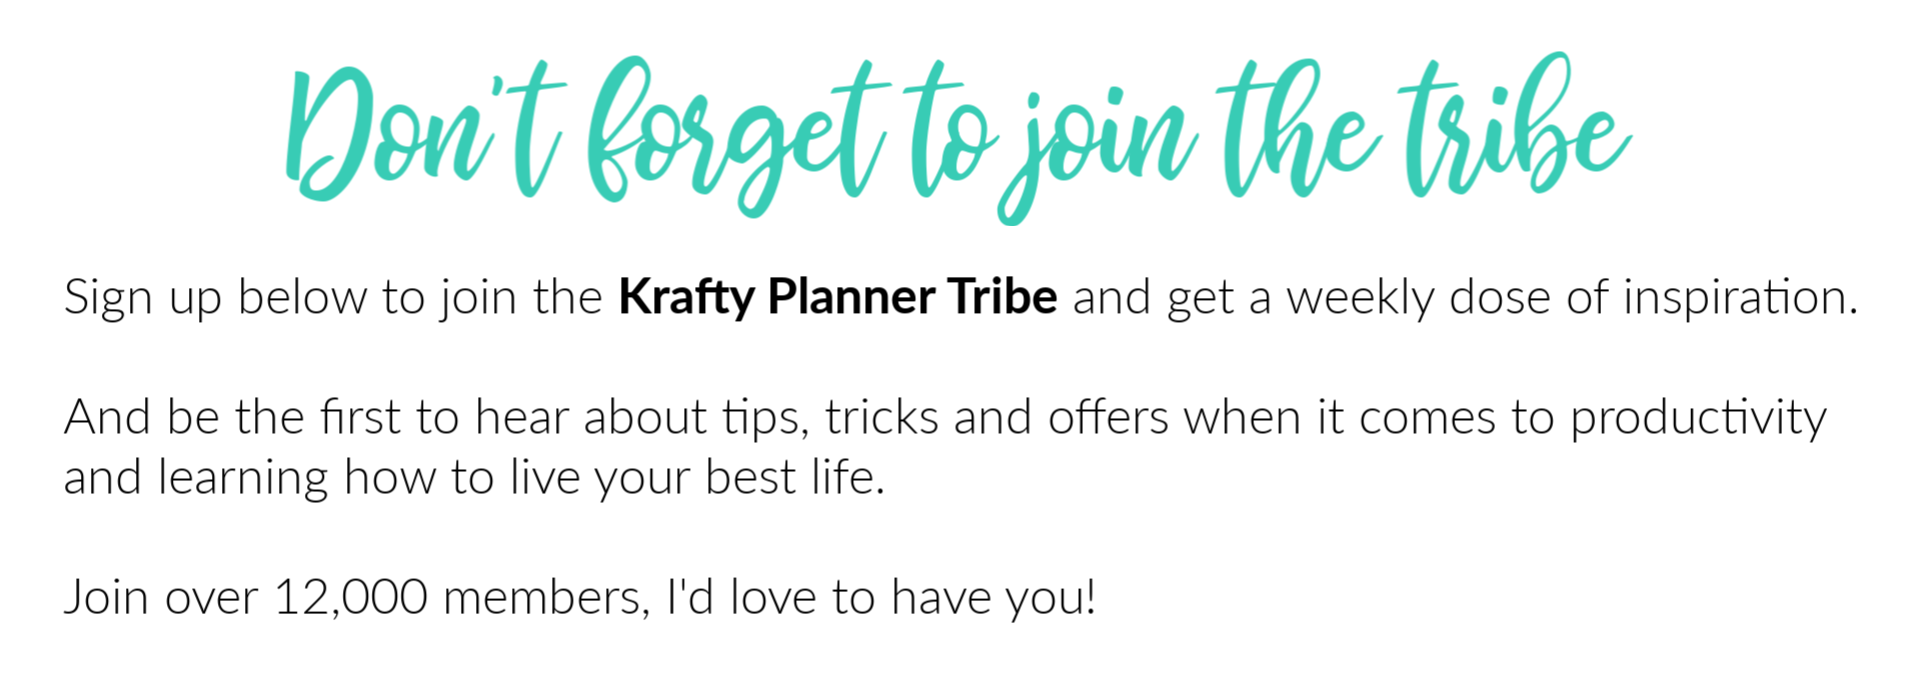 Don't forget to join the tribe and get a weekly dose of inspiration.